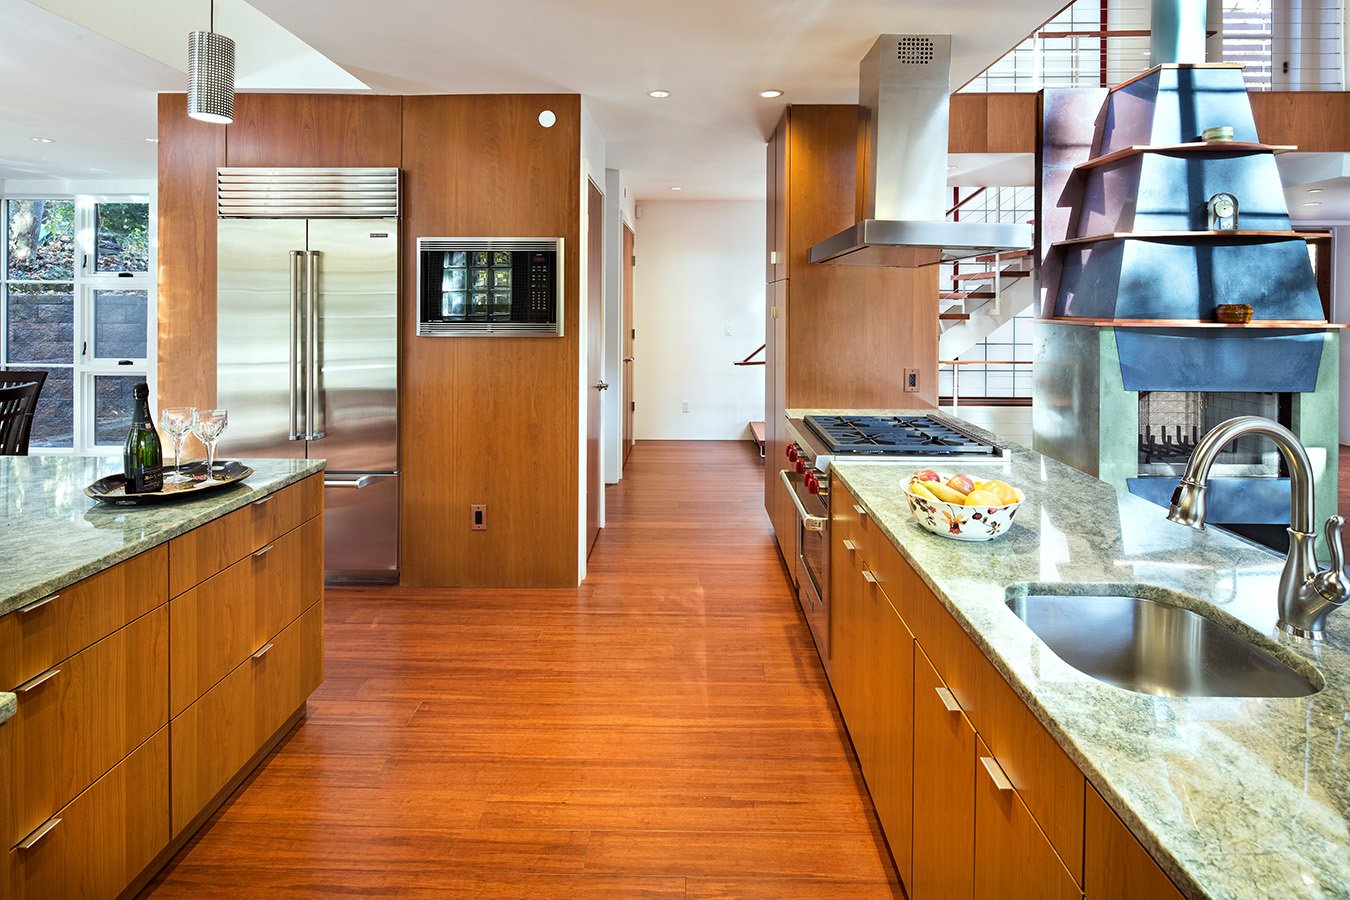 Kitchen, Refrigerator, Cooktops, Range, Range Hood, Microwave, Dishwasher, Granite, Wood, Medium Hardwood, Mosaic Tile, Ceiling, Pendant, Undermount, and Concrete Kitchen  Best Kitchen Mosaic Tile Microwave Pendant Photos from Home for Sale: Takoma Park House